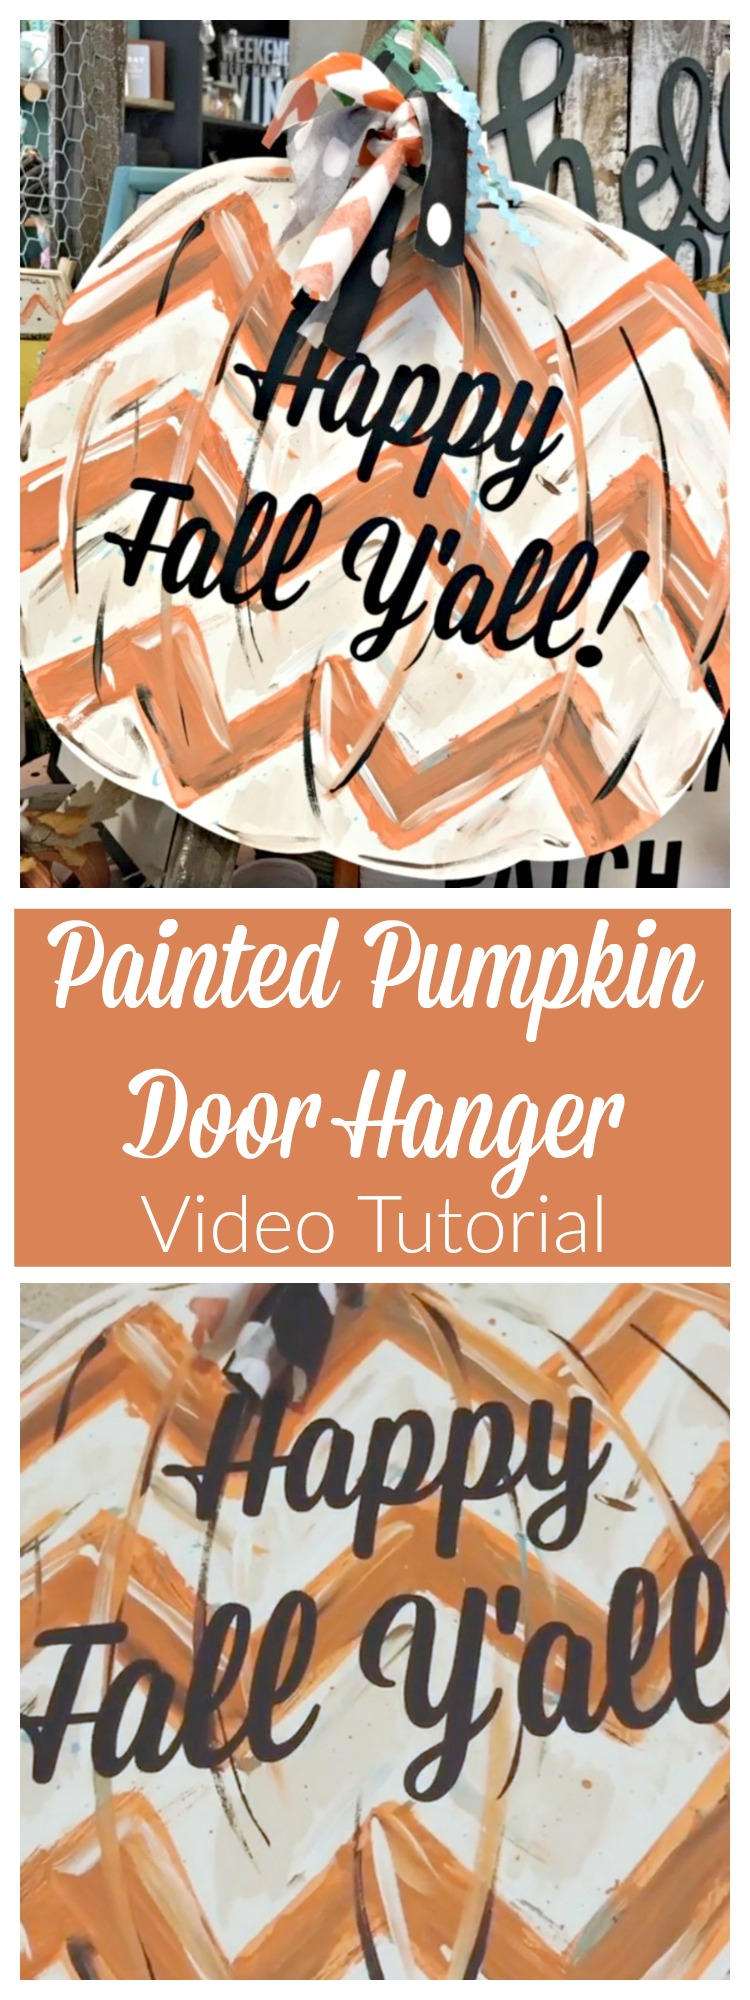 How to Paint a Pumpkin Door Hanger for Your Fall & Halloween Home Decor!